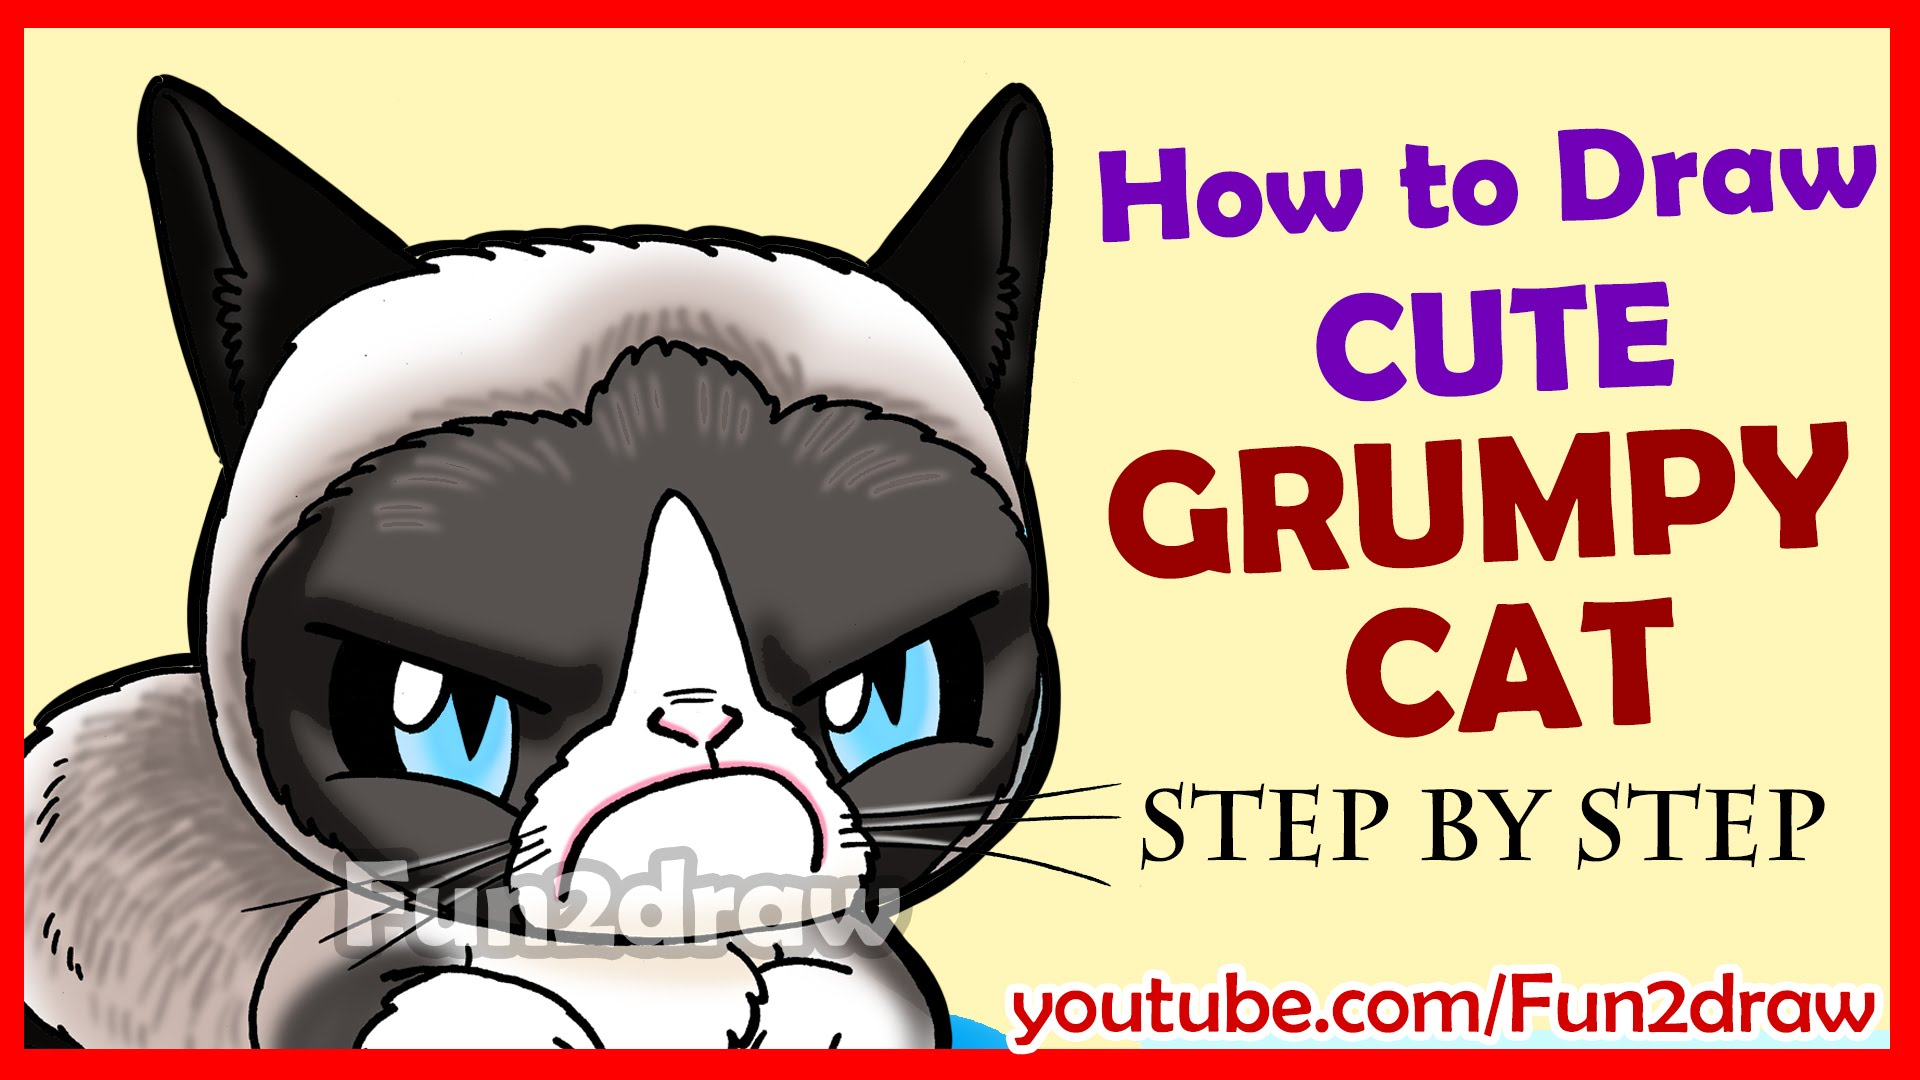 Grumpy Cat clipart easy cat Cat YouTube How Cute to